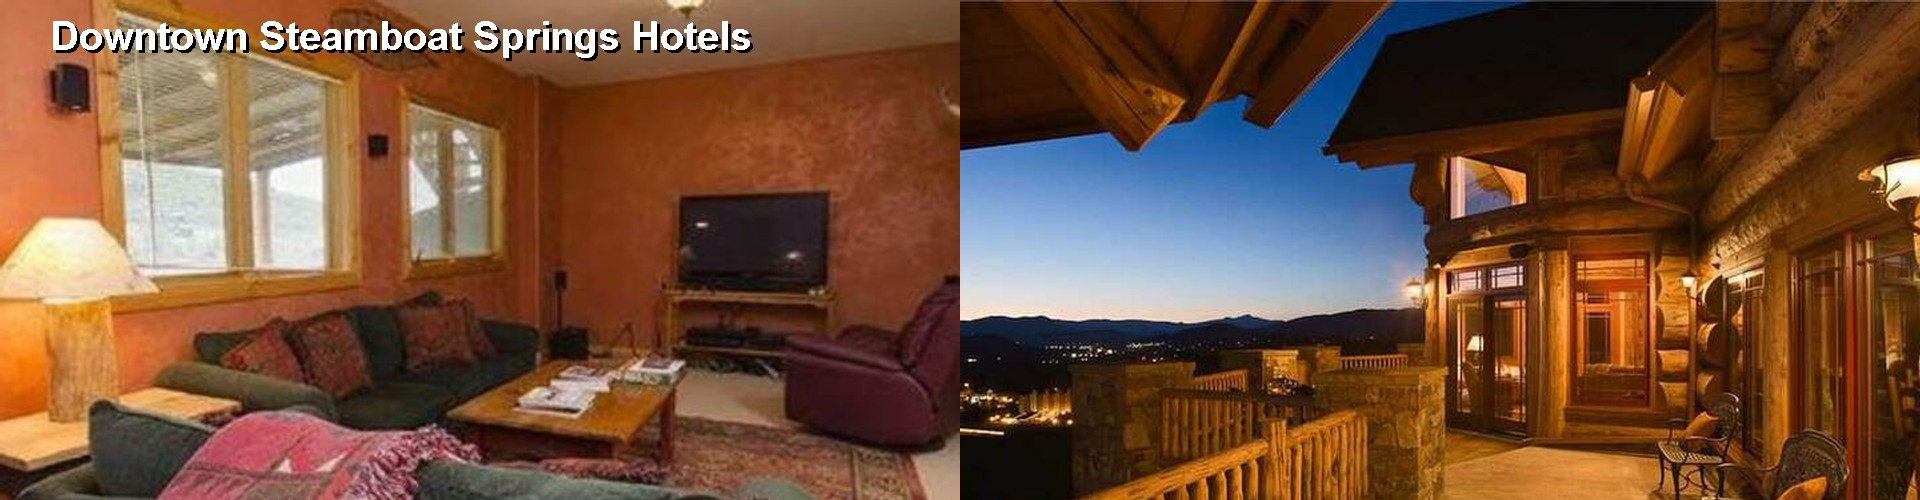 5 Best Hotels near Downtown Steamboat Springs